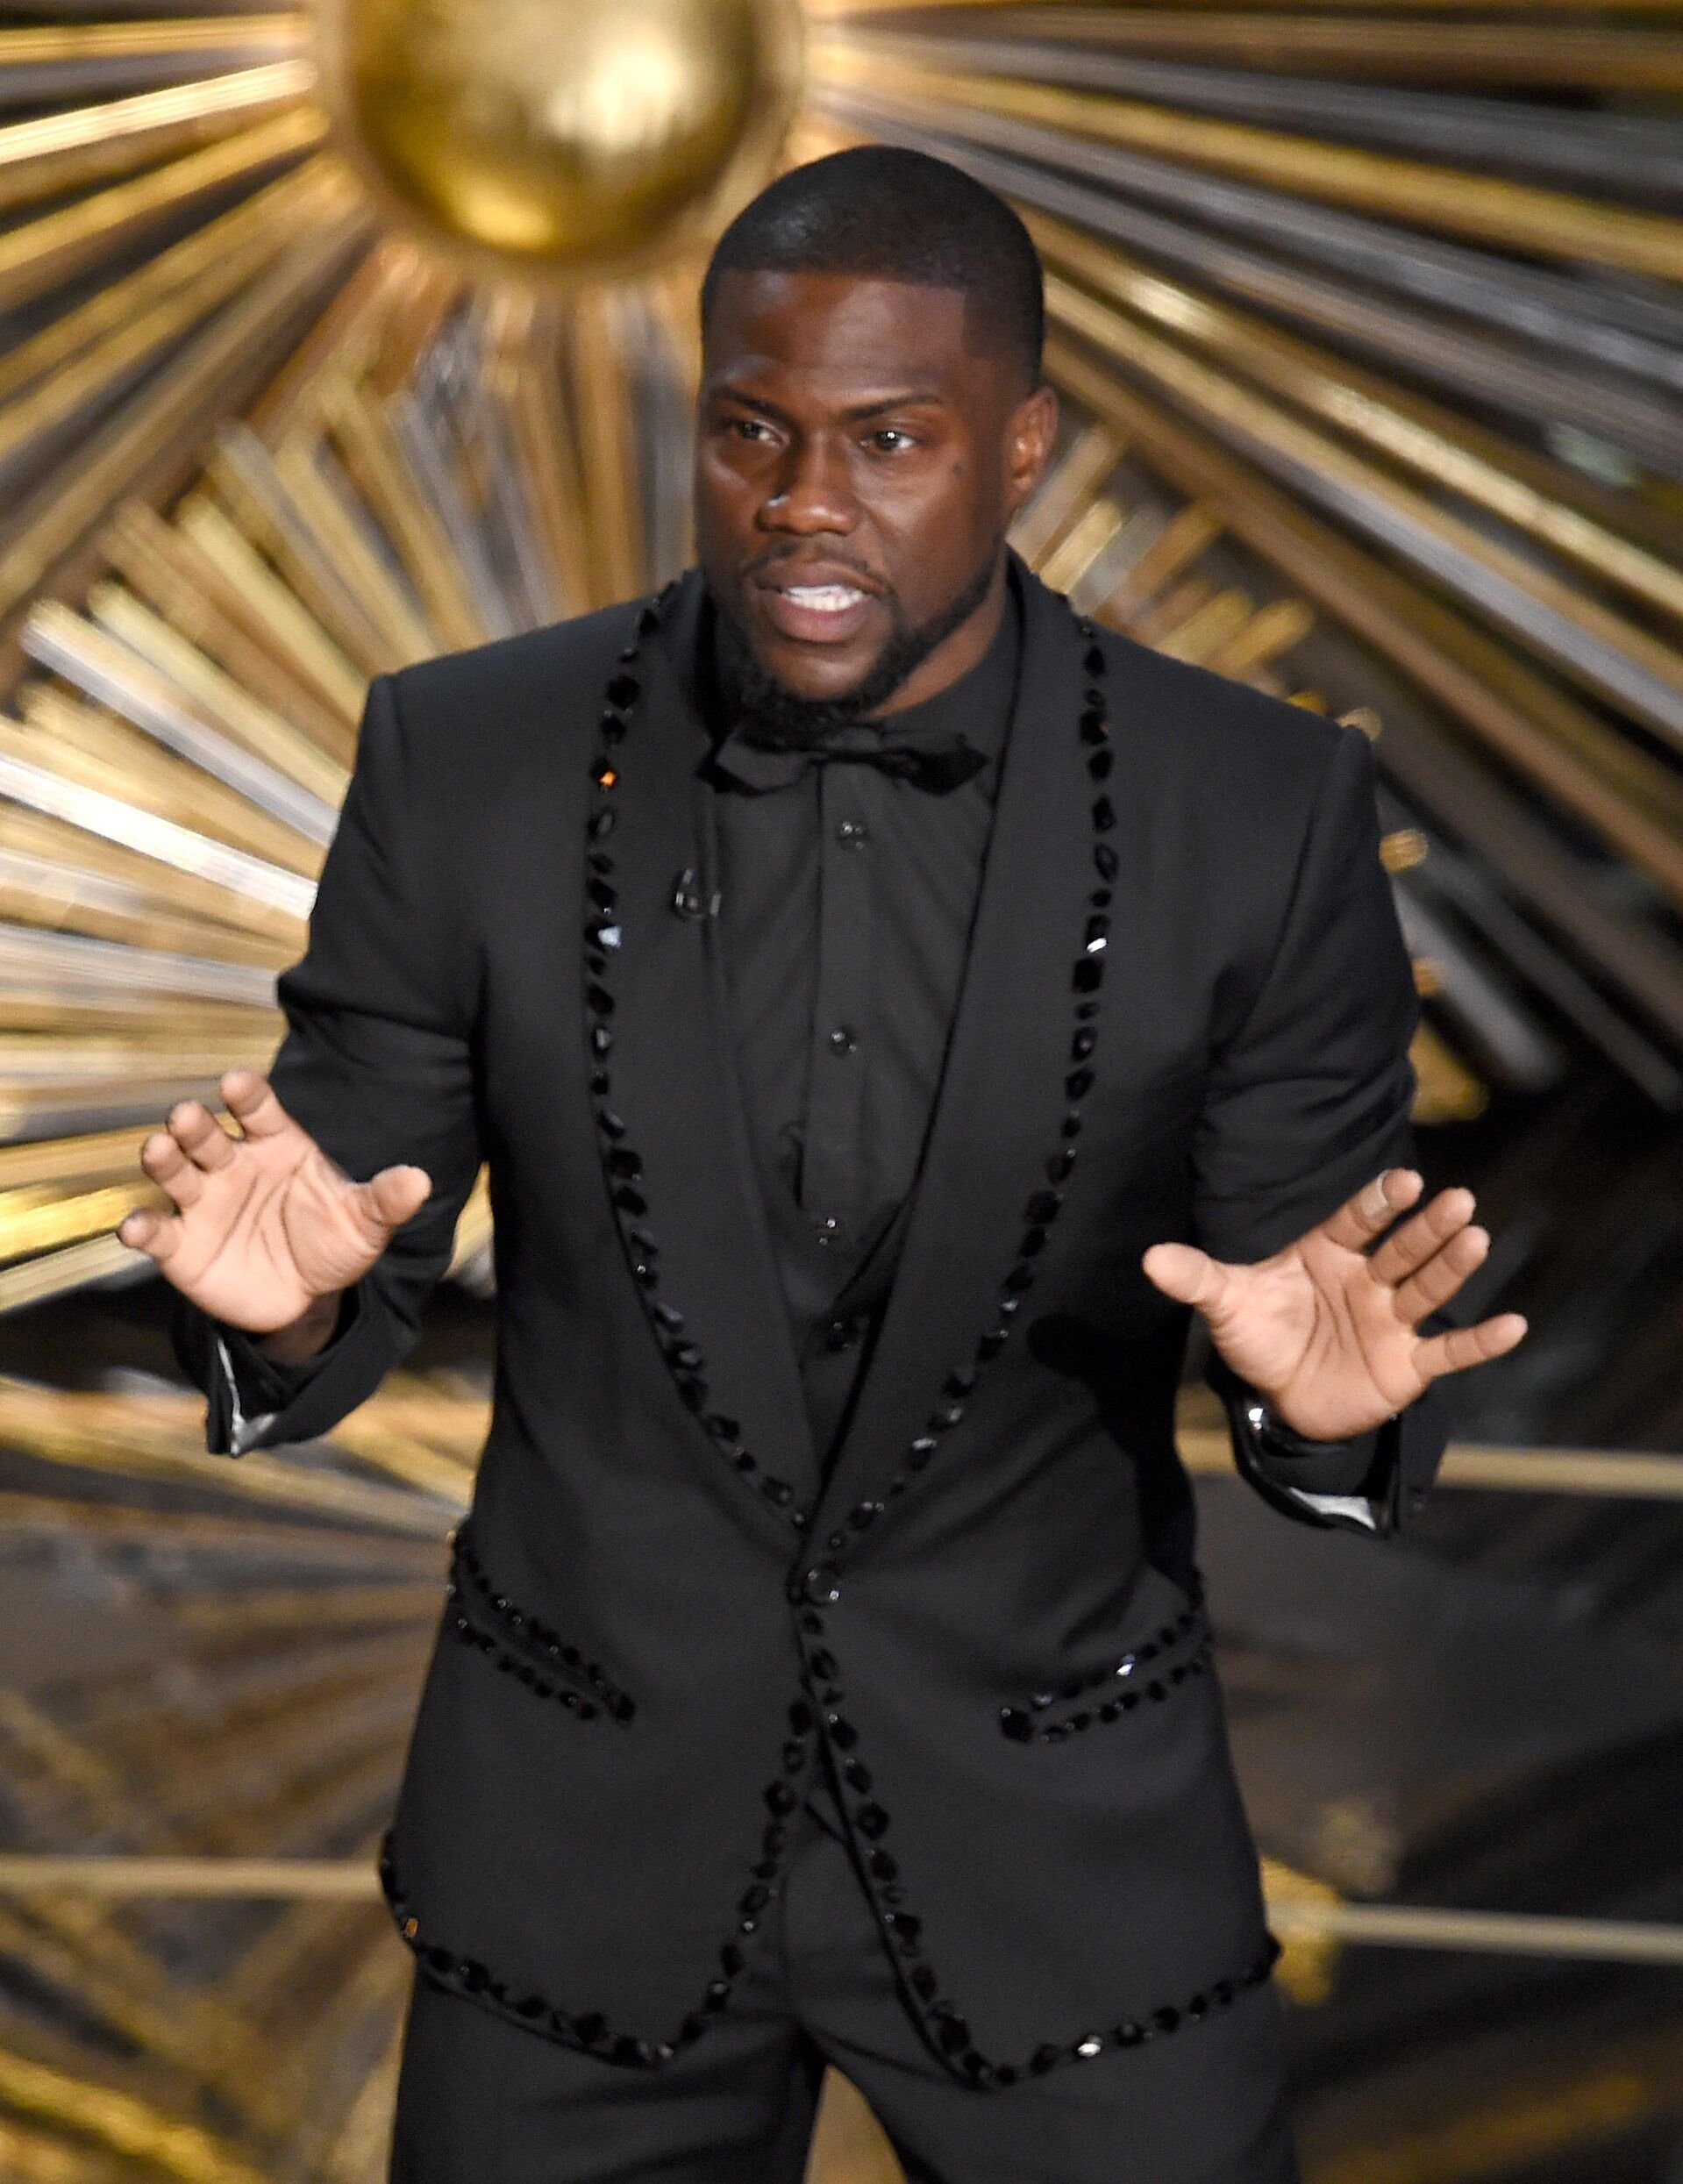 Kevin Hart hosting an awards night onstage | Source: Getty Images/GlobalImagesUkraine